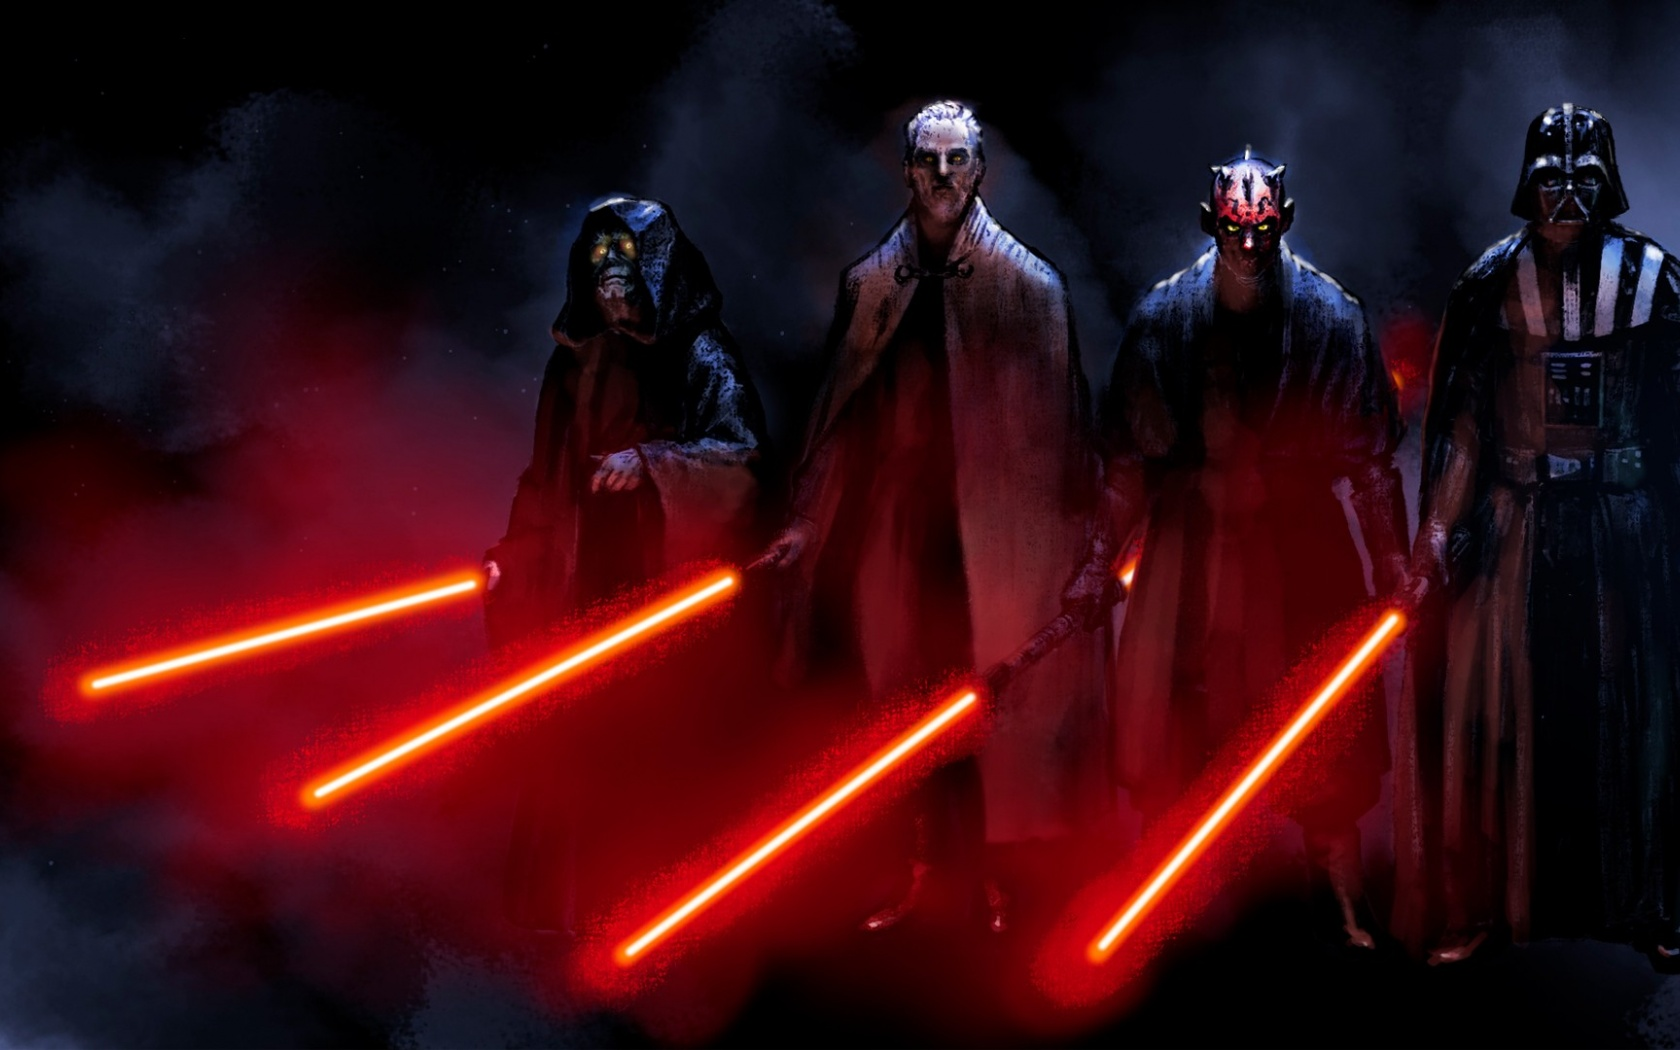 Free Download 1680x1050 Star Wars Sith Desktop Pc And Mac Wallpaper 1680x1050 For Your Desktop Mobile Tablet Explore 50 Star Wars Mac Wallpaper Star Wars Logo Wallpaper Star Wars